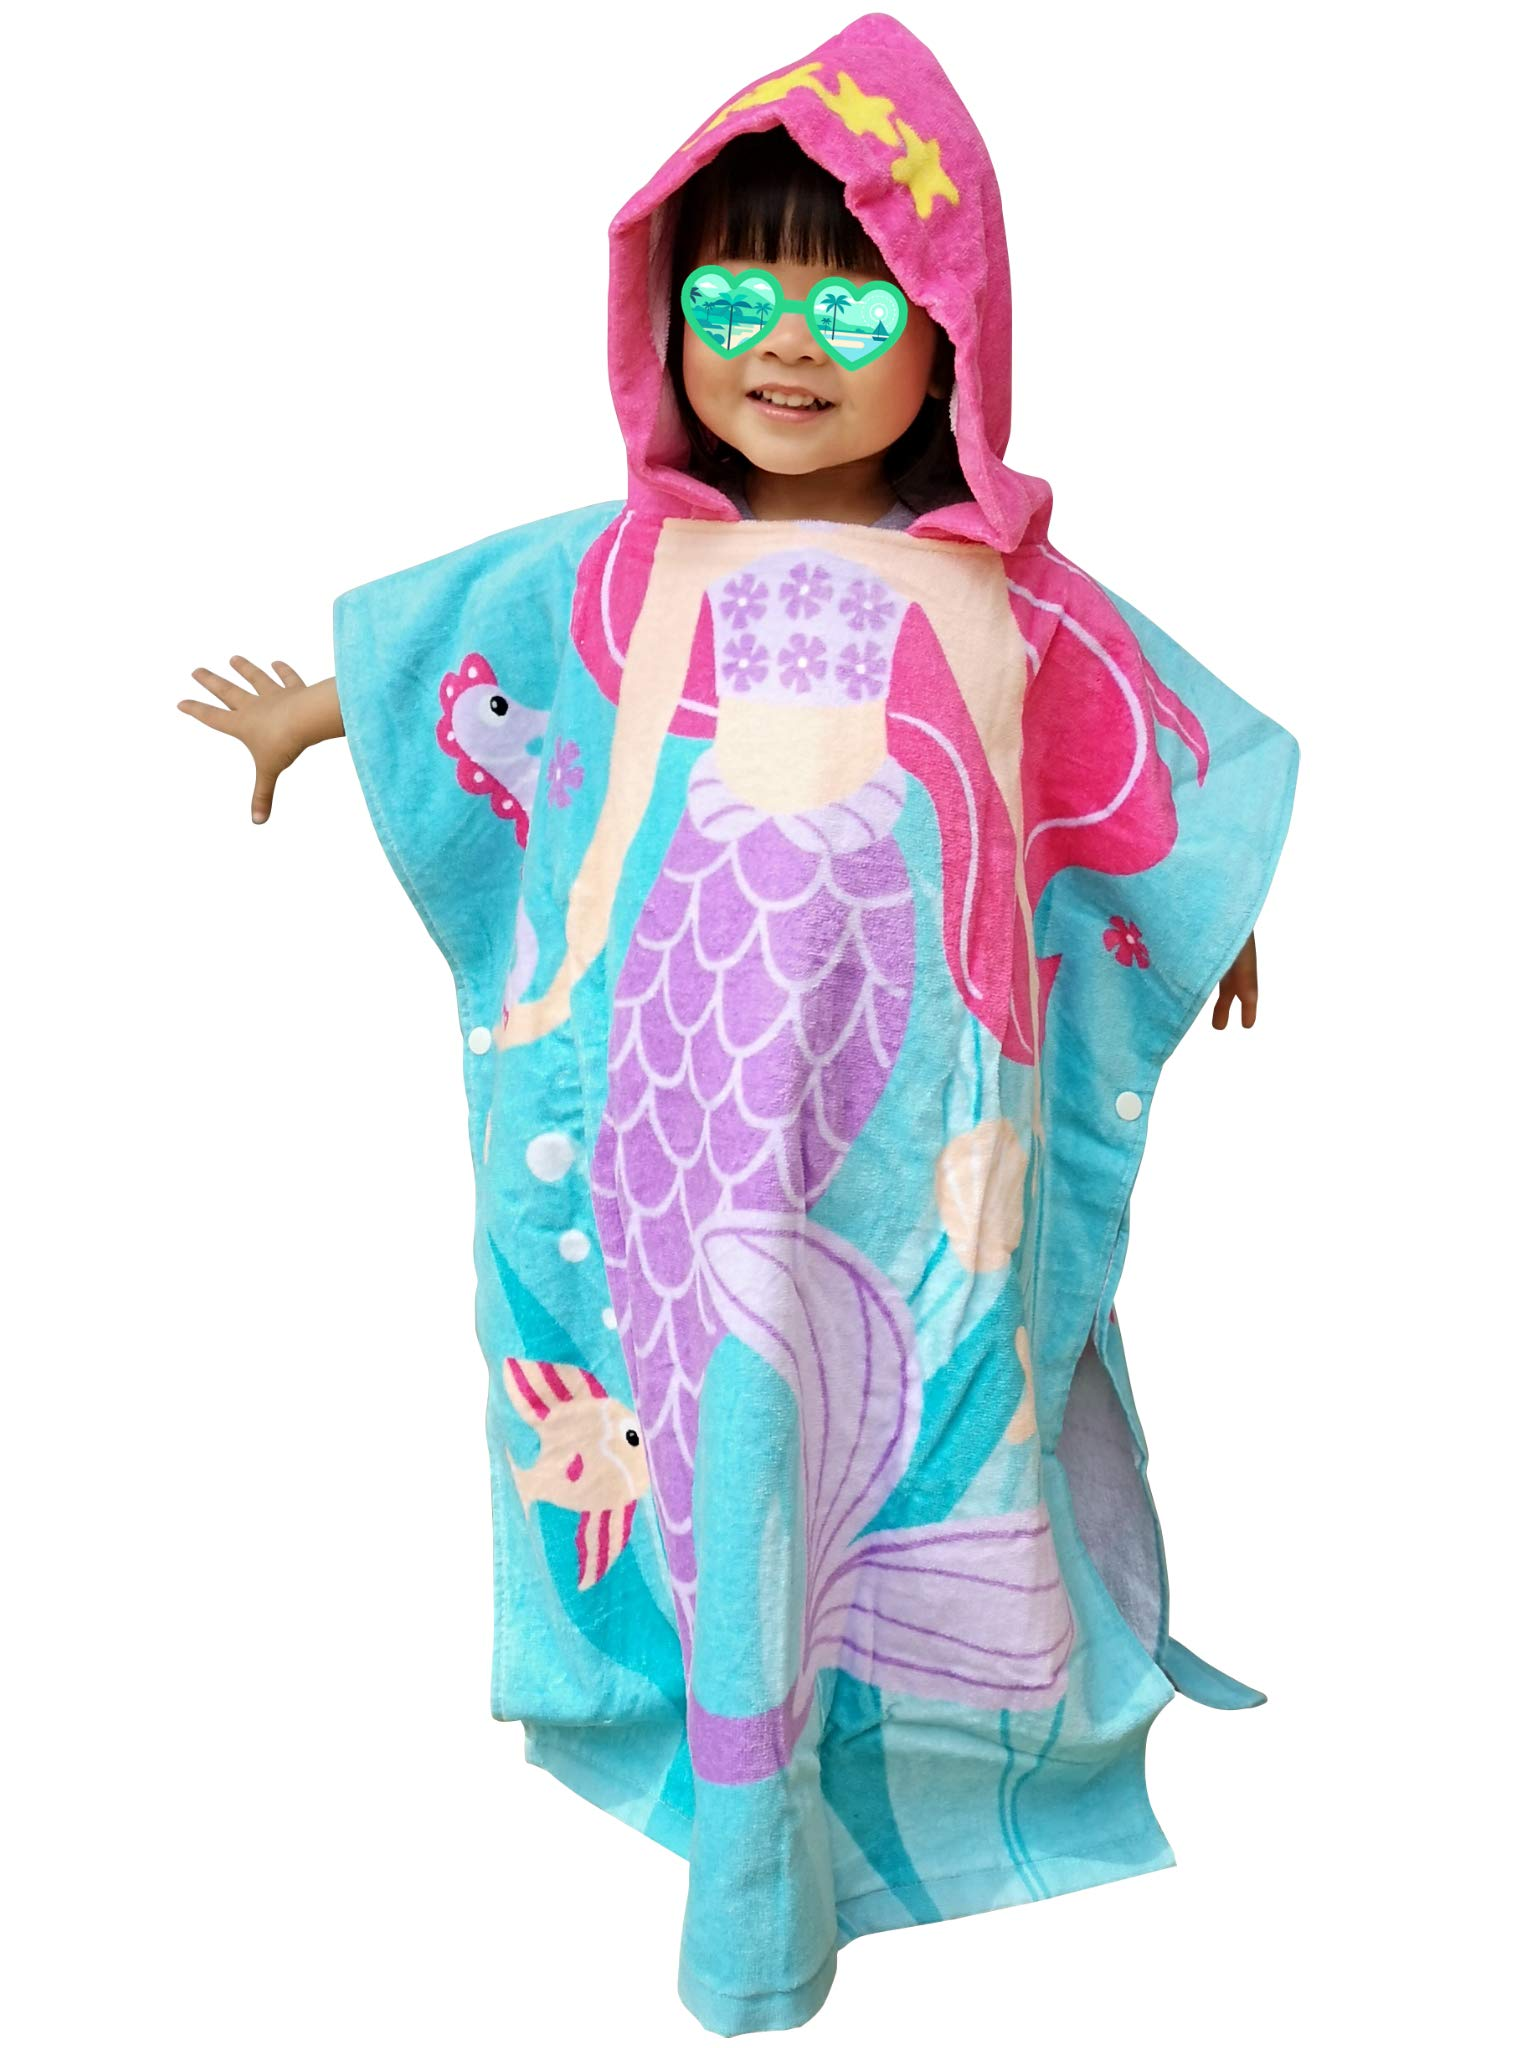 Athaelay Age 2-7 Years Girls Beach Towel, 100% Cotton, Extra Large Size 27.5''X24'' with 11''(W) x12(H) Hood, Use for Swim Cover up/Pool/Bath Robe Hooded Poncho Towels, Mermaid Theme by Athaelay